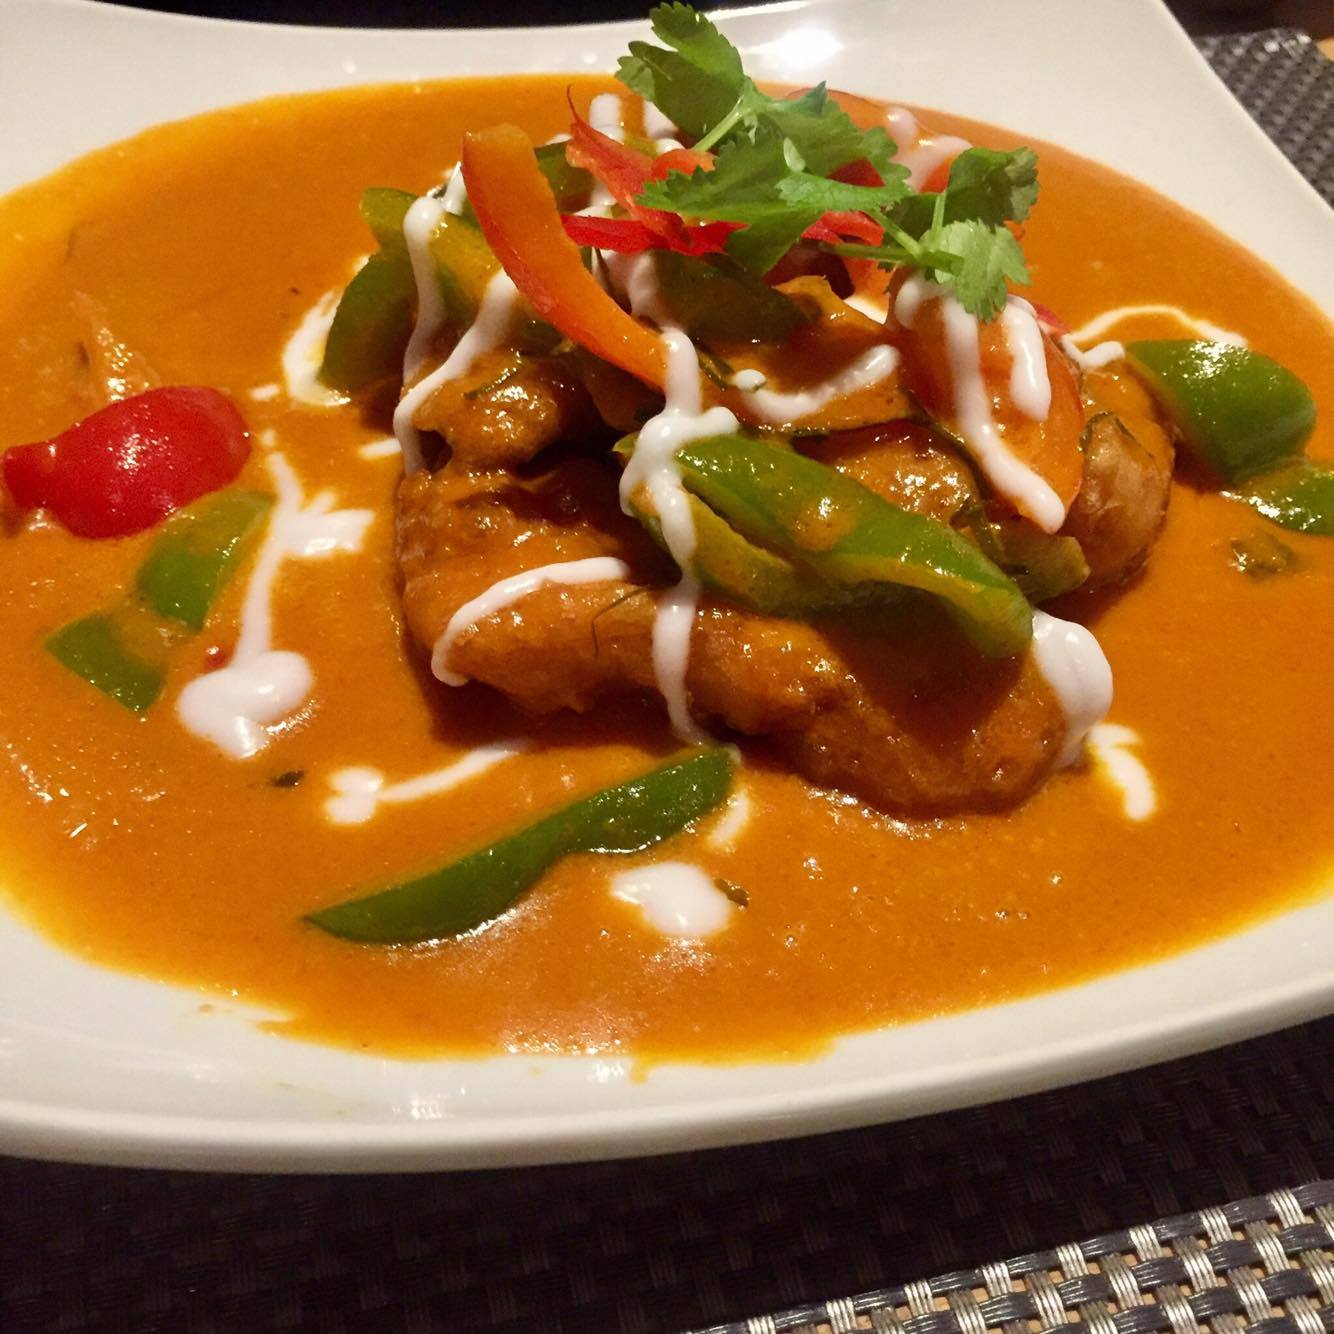 crispy coated sea bass with red curry sauce